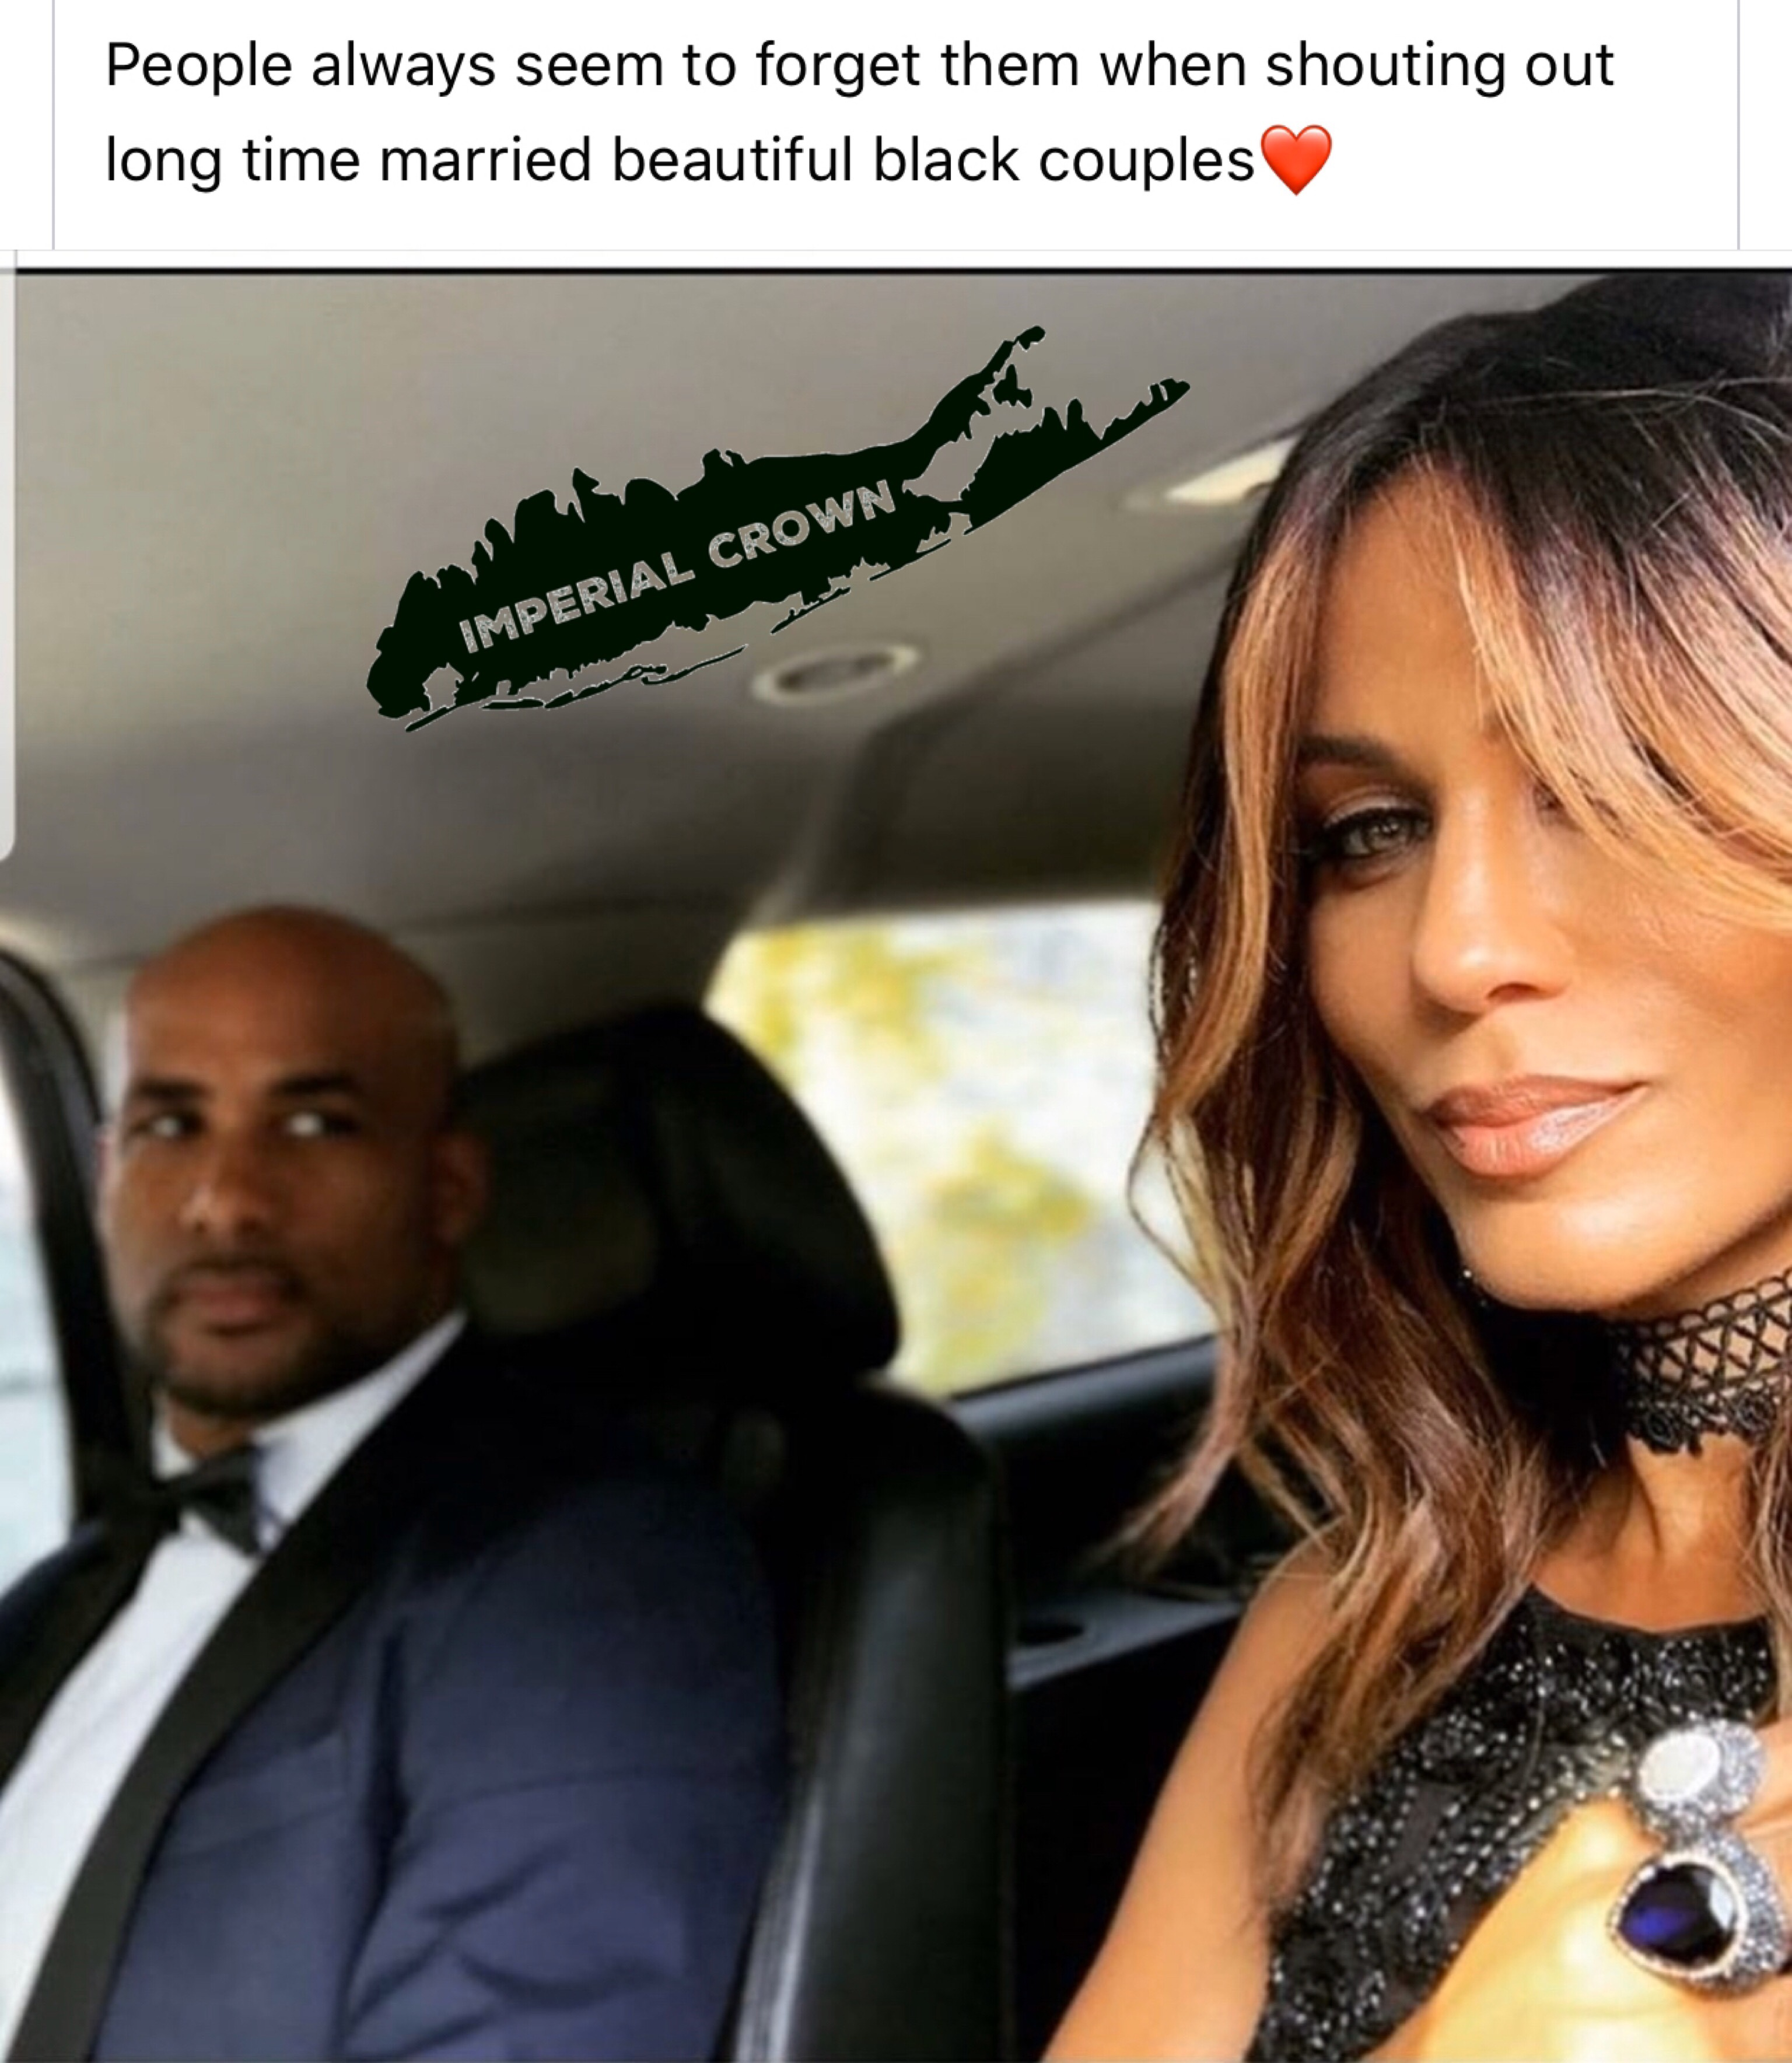 People always seem to forget them when shouting out long time married beautiful black couples